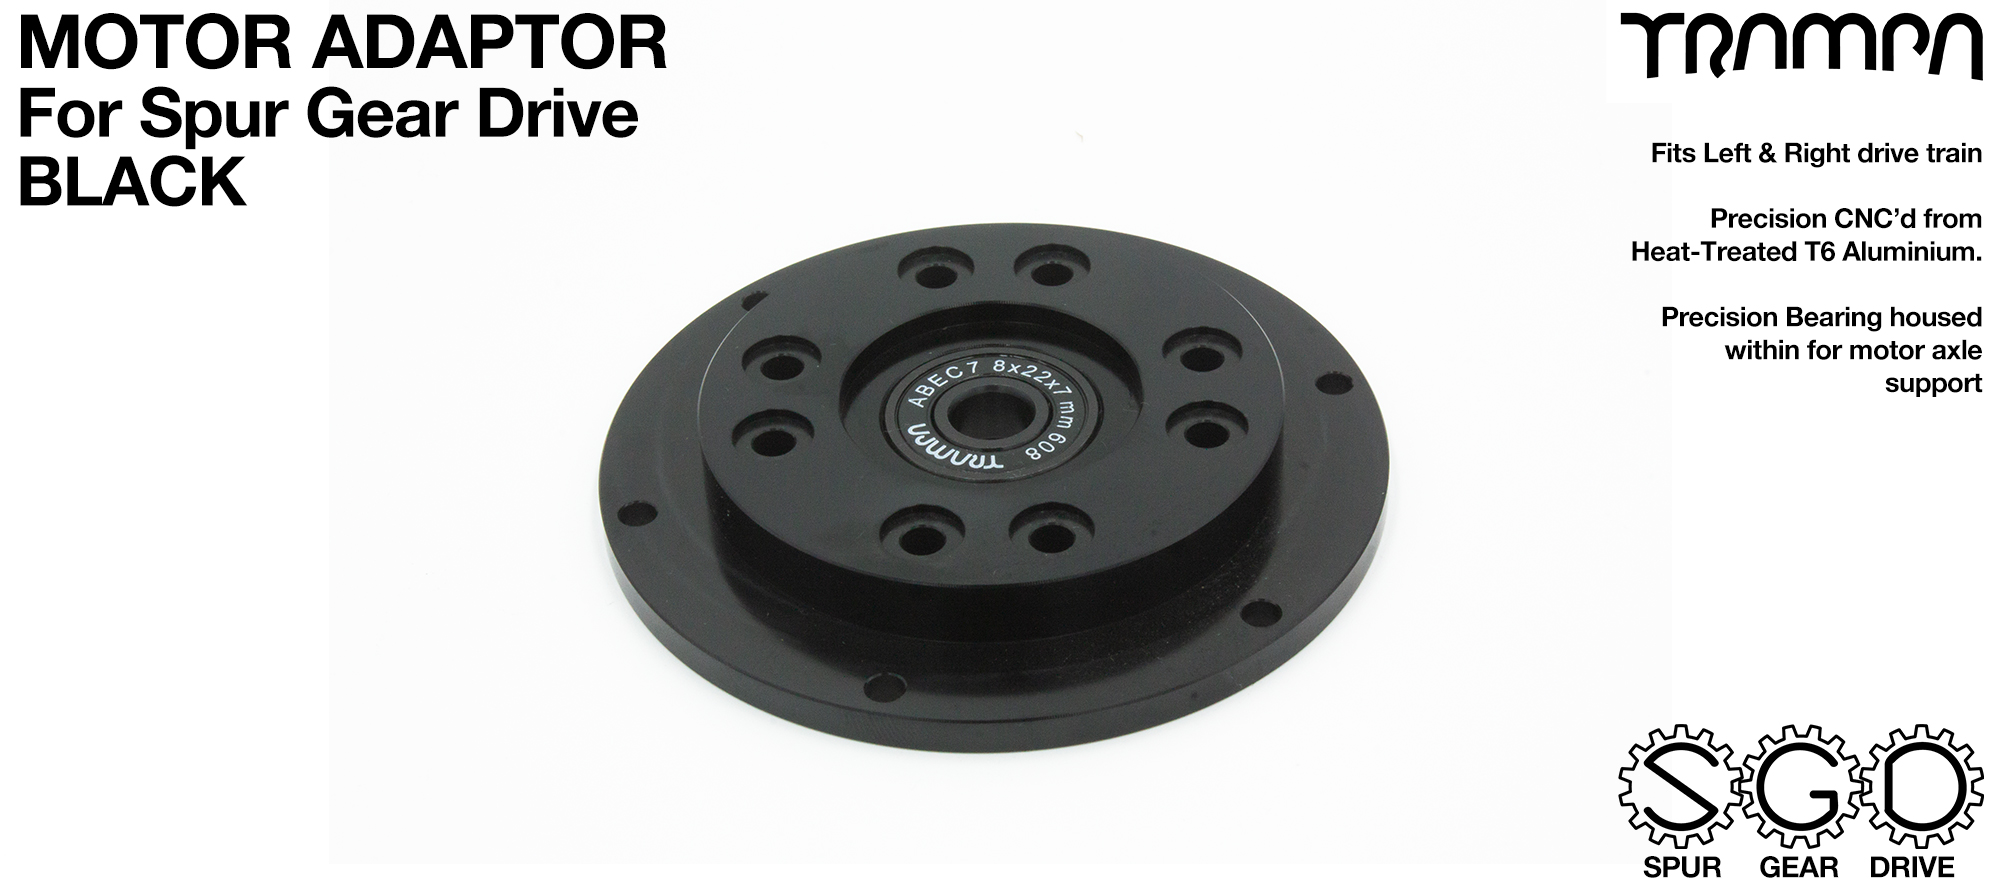 Motor Adapter Plate - BLACK